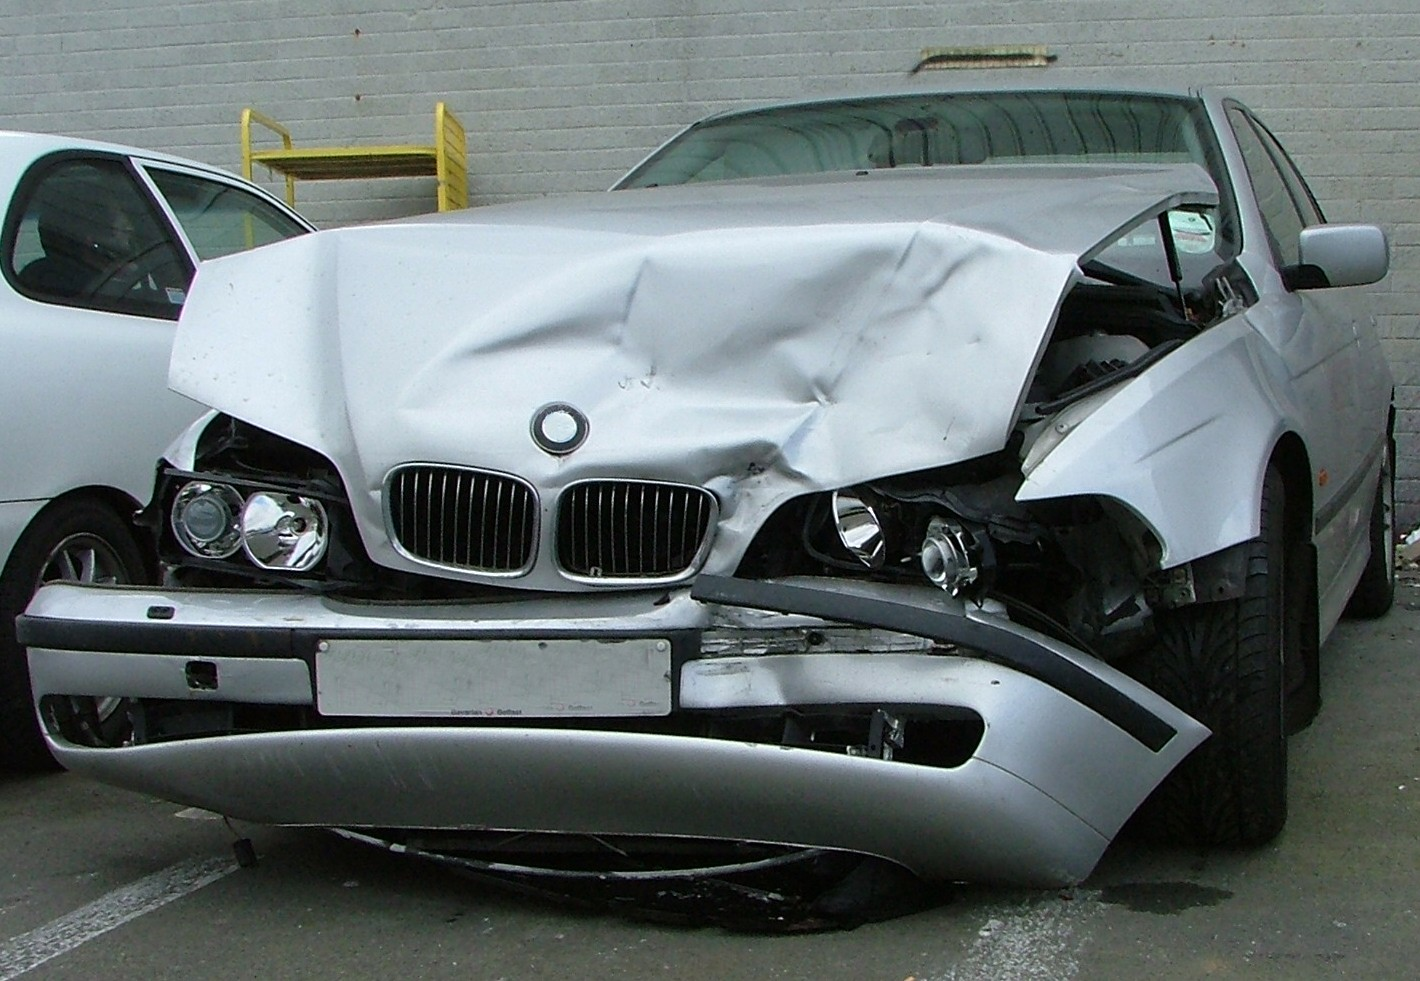 accident with my car